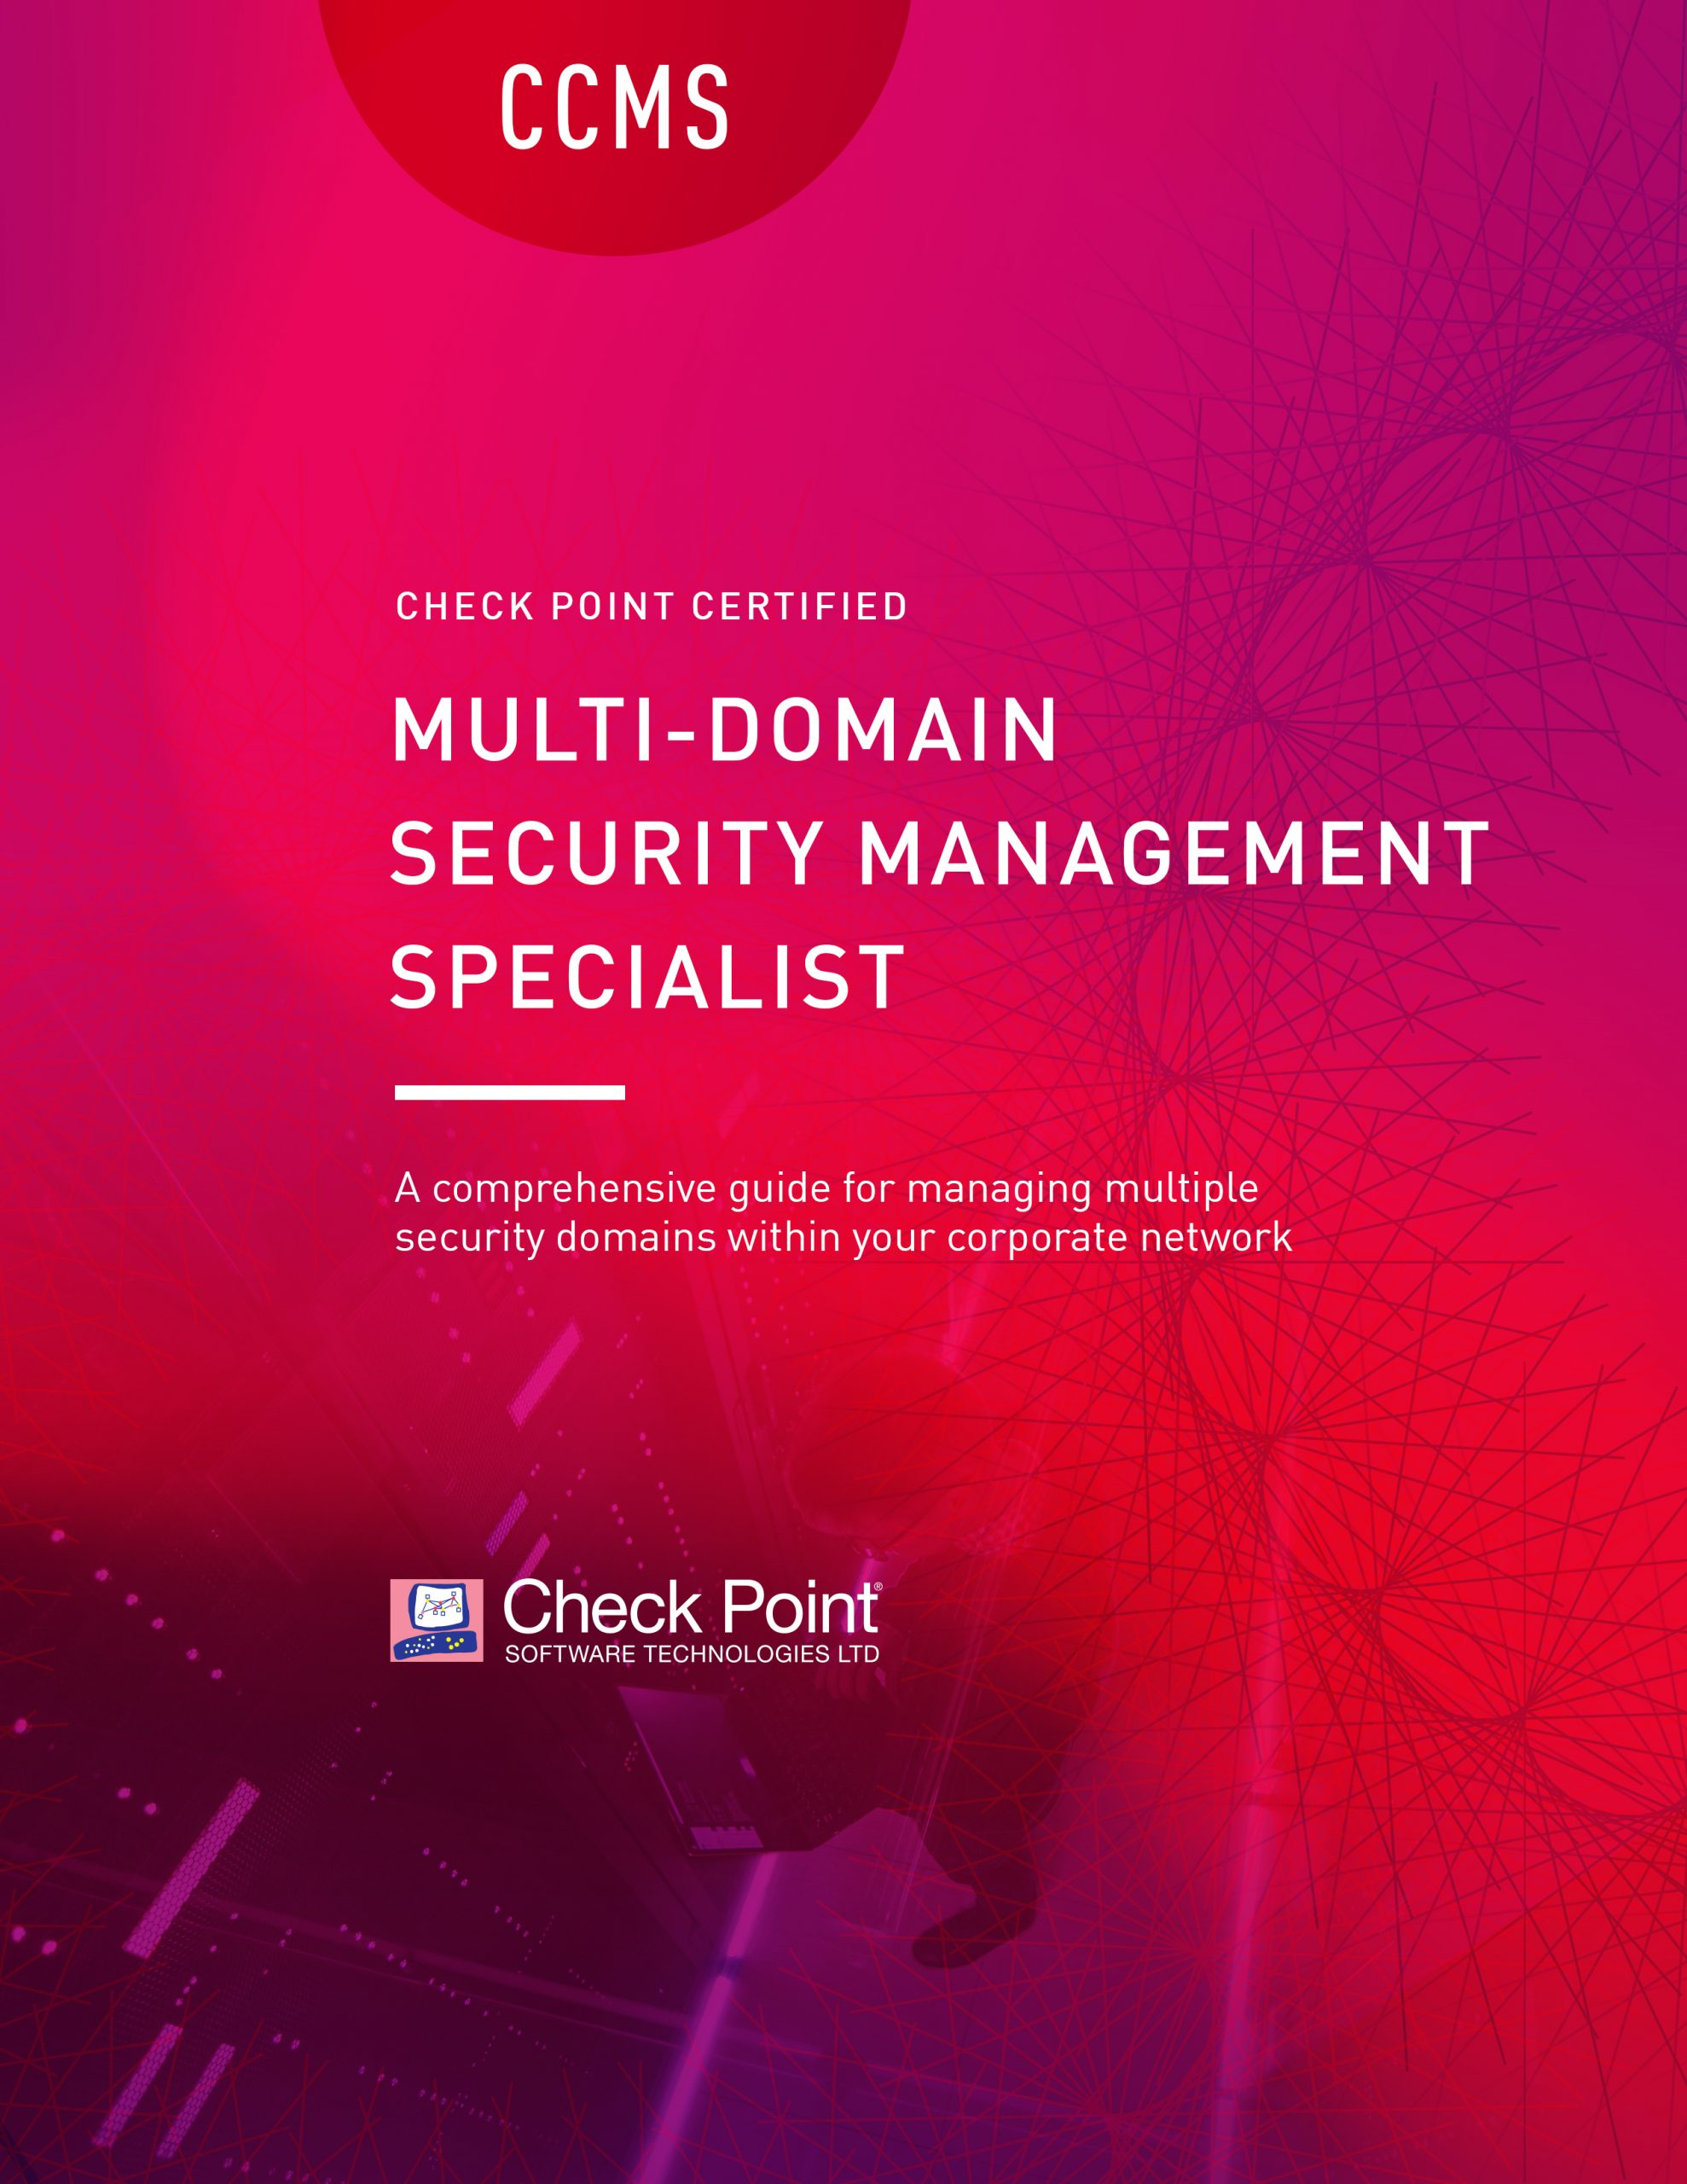 CCMS – Check Point Certified Multi-Domain Security Management Specialist (CCMS)